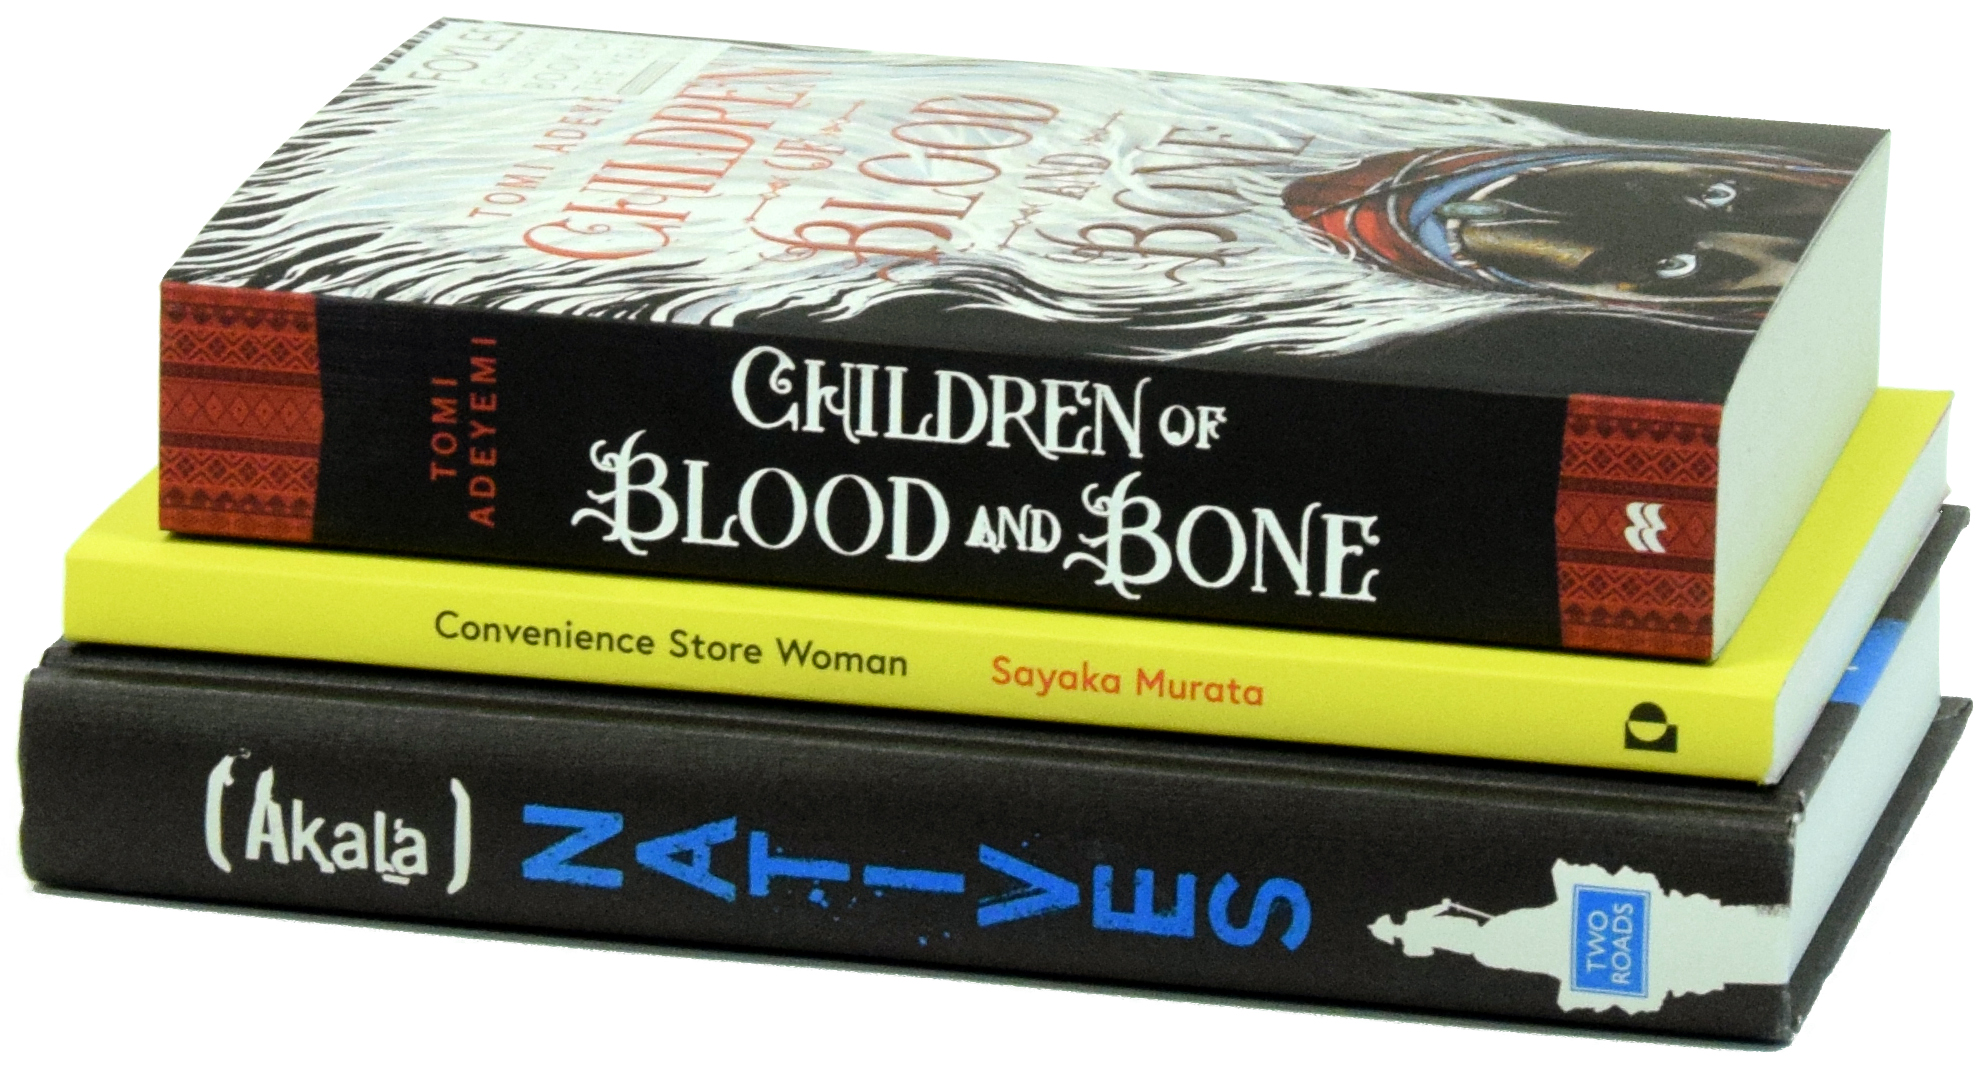 Foyles Book of the Year 2018 Bundle